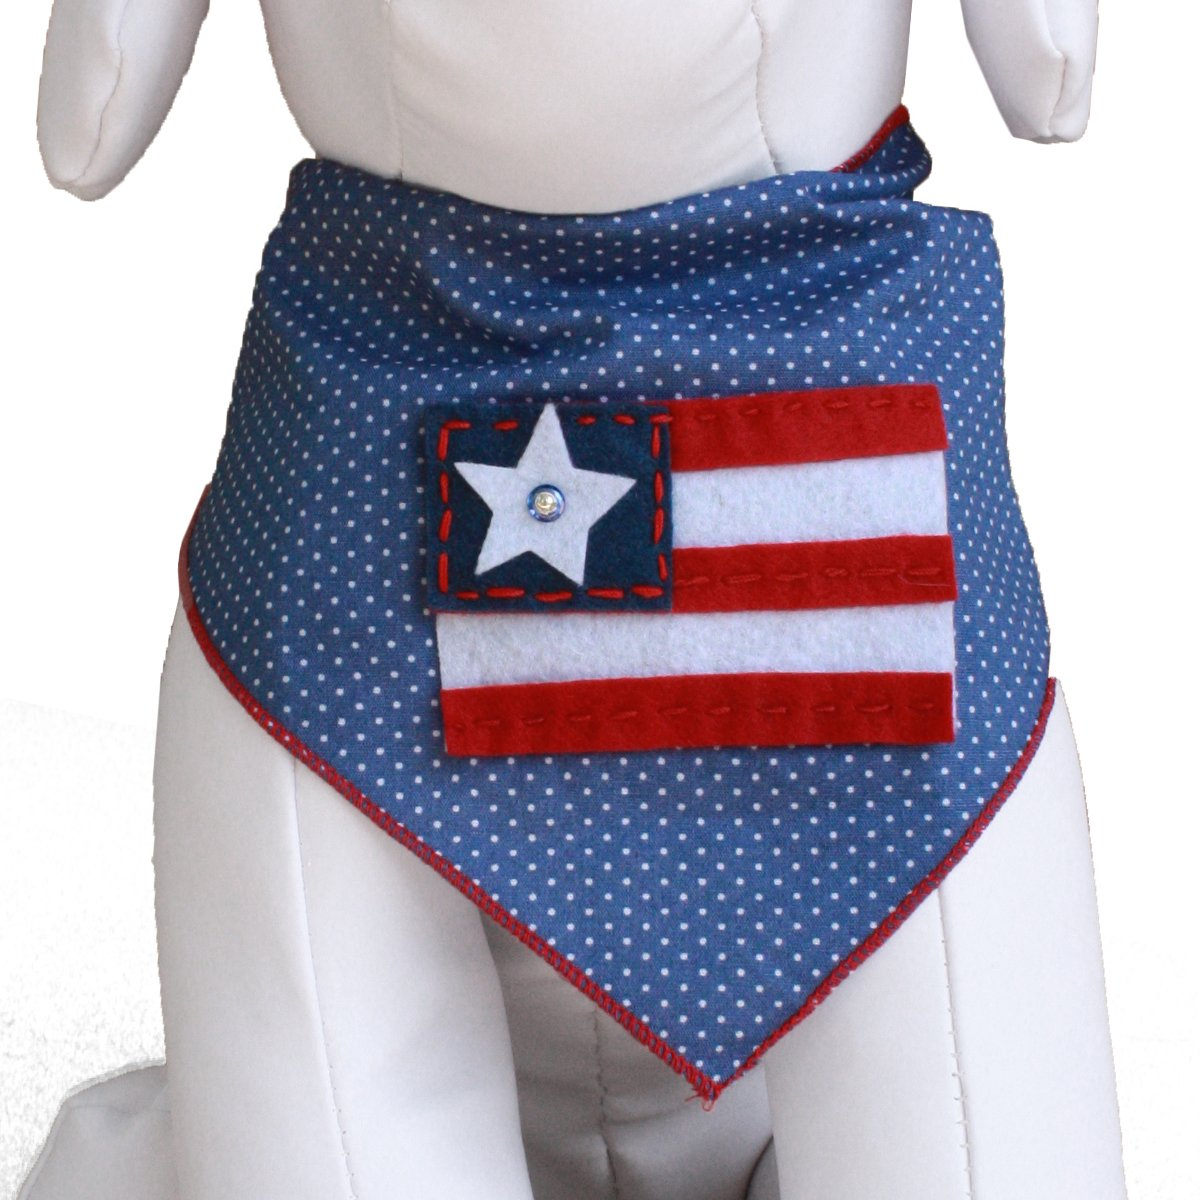 Tail Trends 4th of July Cotton Dog Bandana, Patriotic Flag, Large